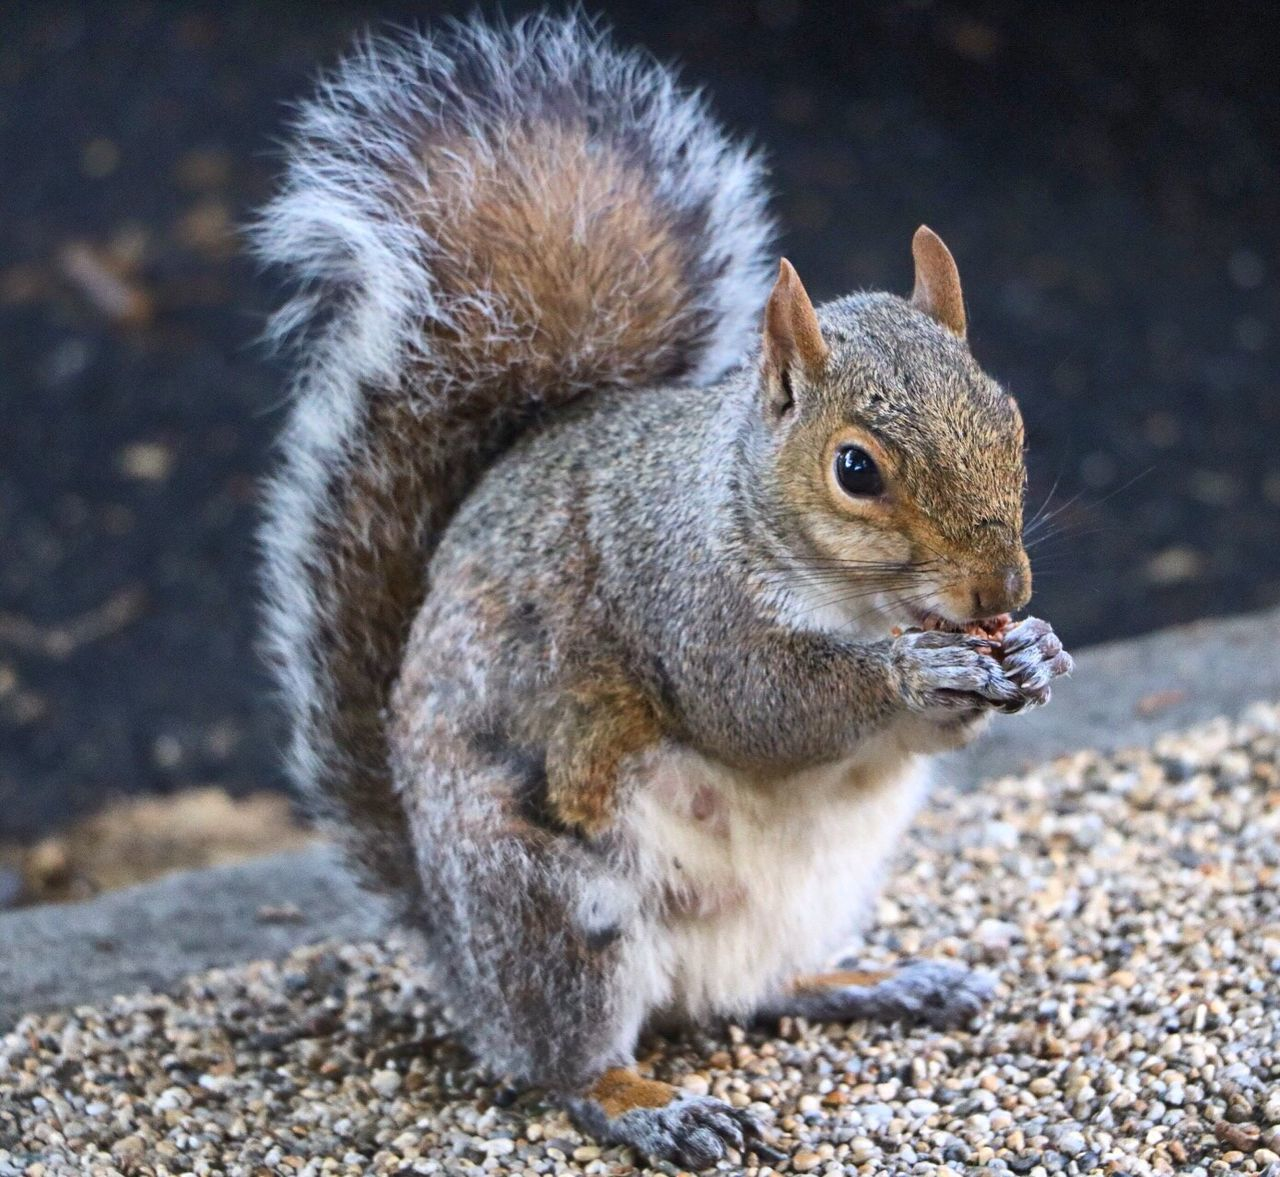 One Animal Animal Themes Squirrel Animals In The Wild Mammal Animal Wildlife Full Length No People Nature Outdoors Day Close-up Tail